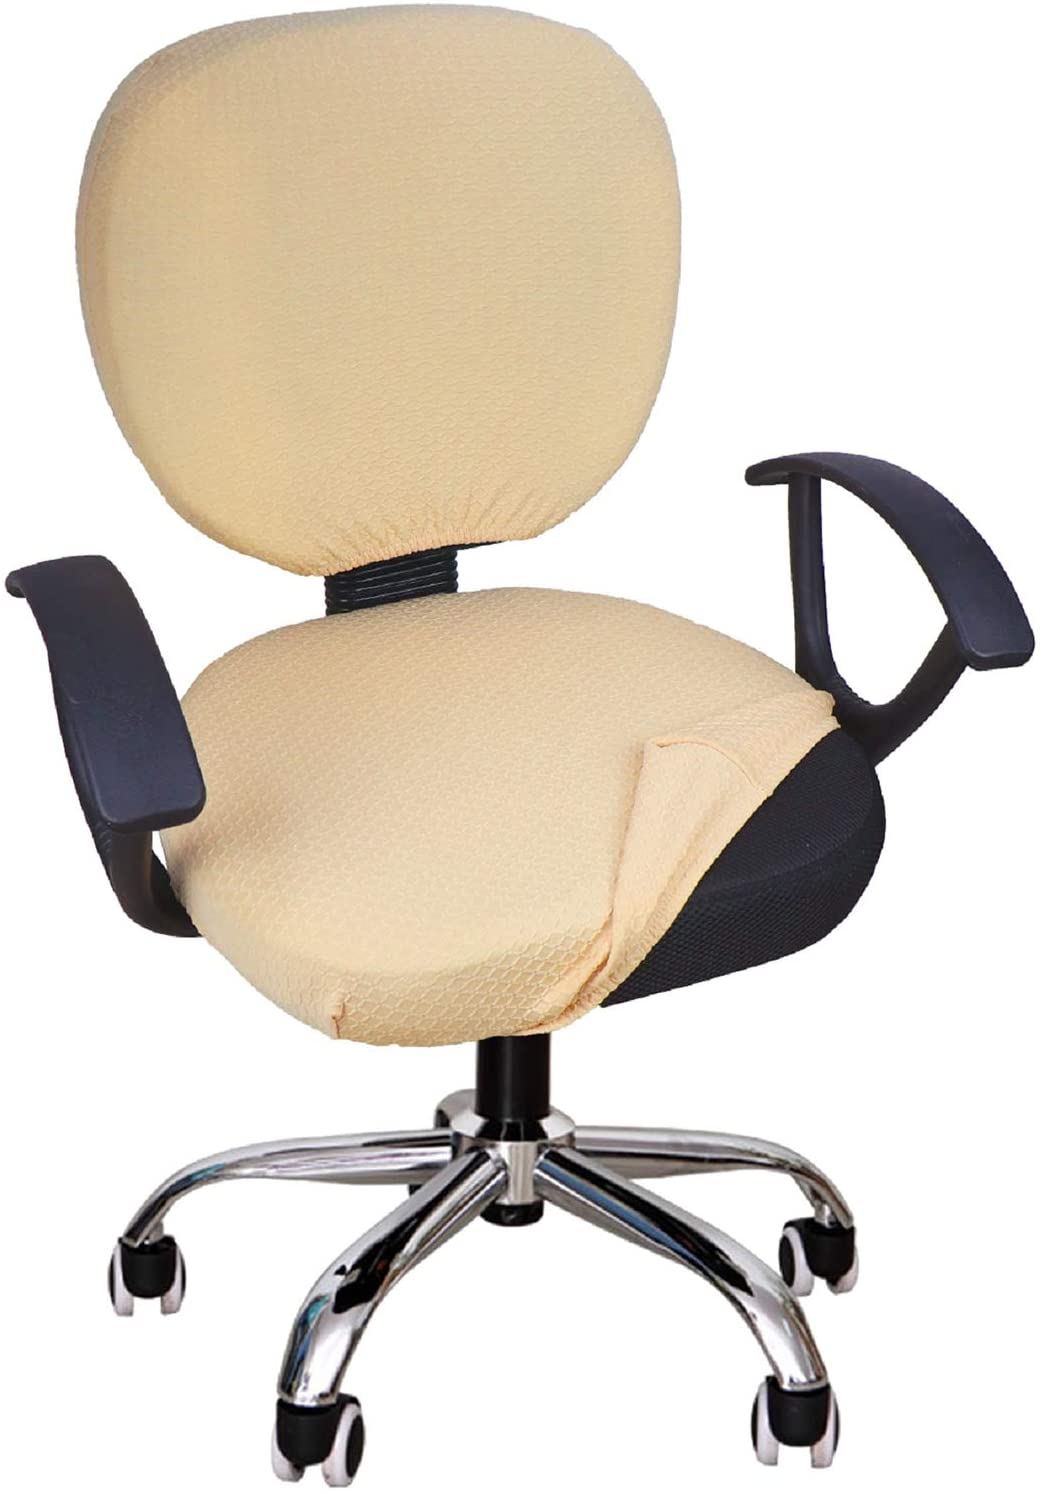 YIMEIS Waterproof Office Chair Cover